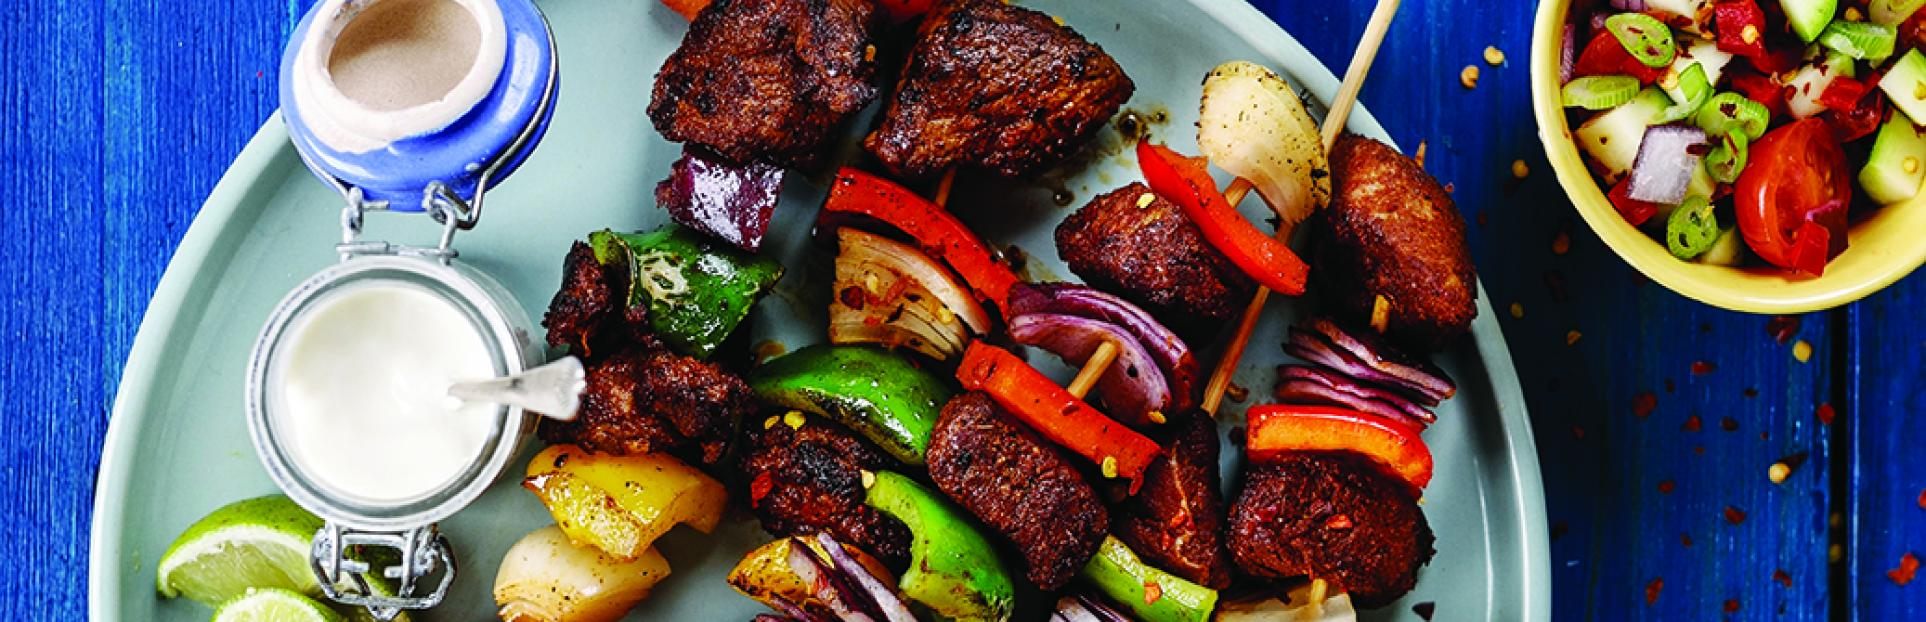 steak fajita skewers on a plate